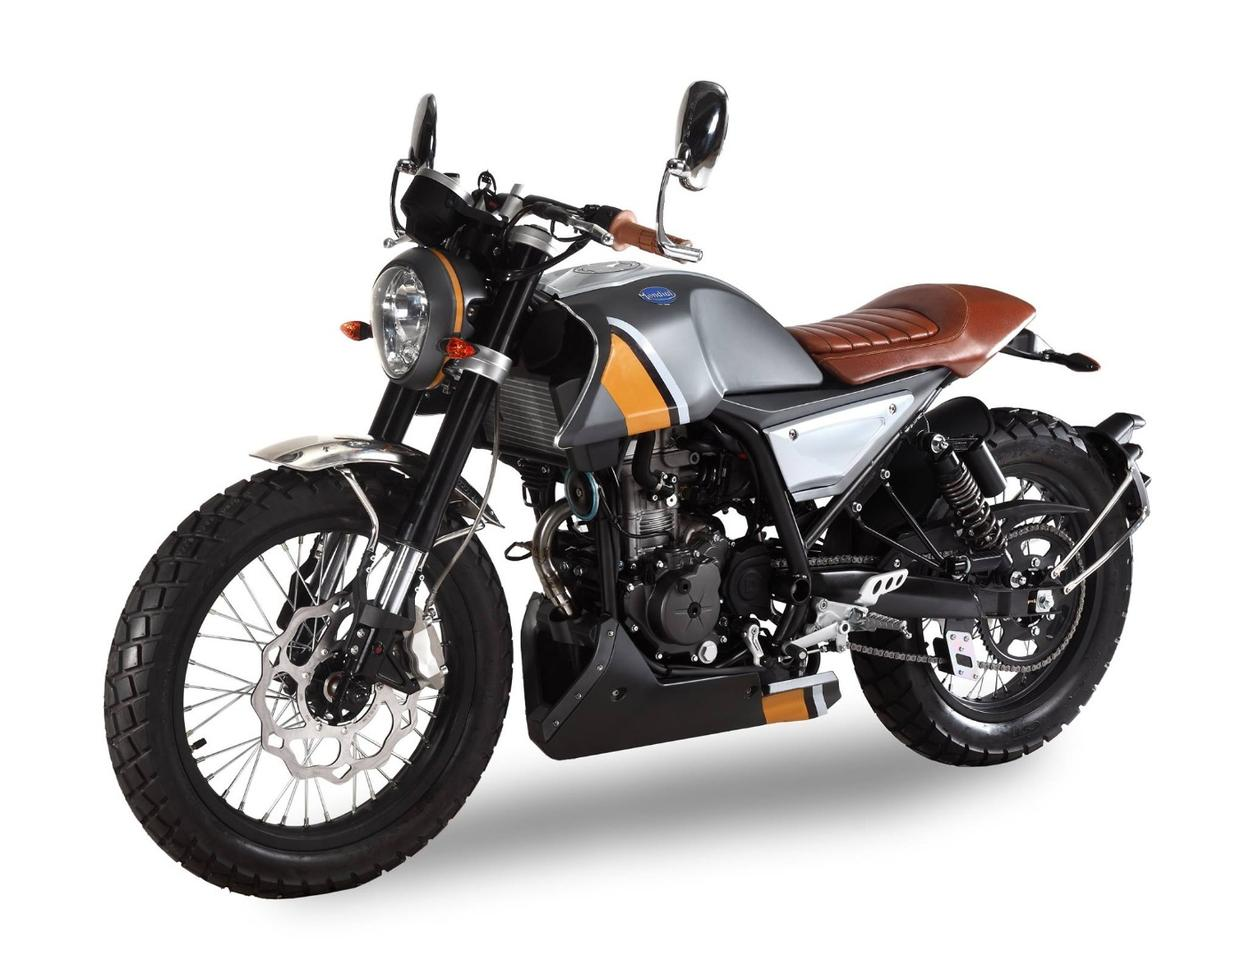 Scramblers are all the rage lately, so it's no surprise thatFBMondial made its return withsuch a striking example